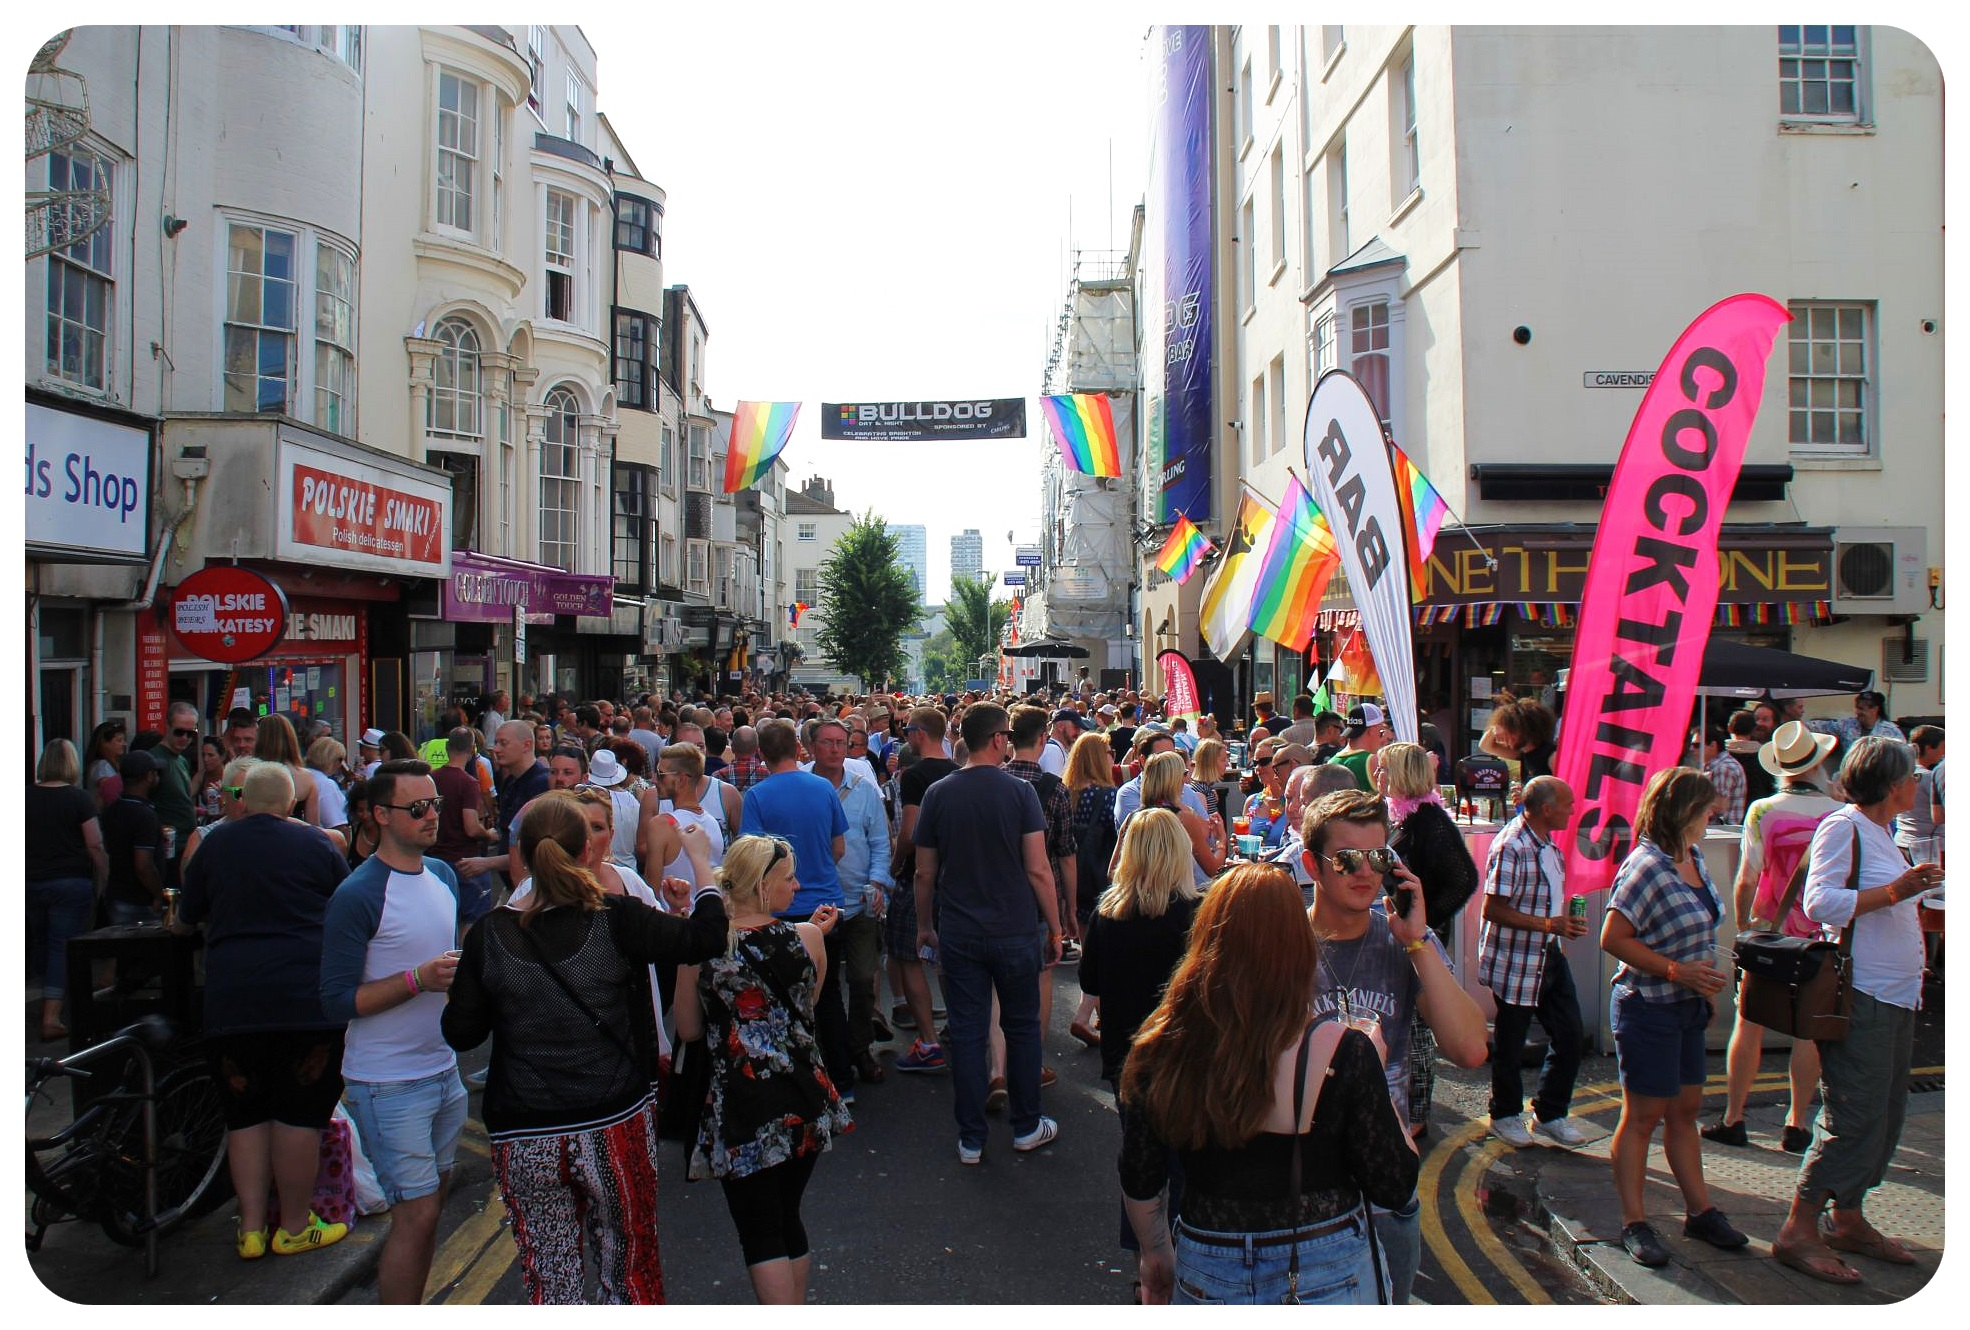 brighton pride 2015 street party